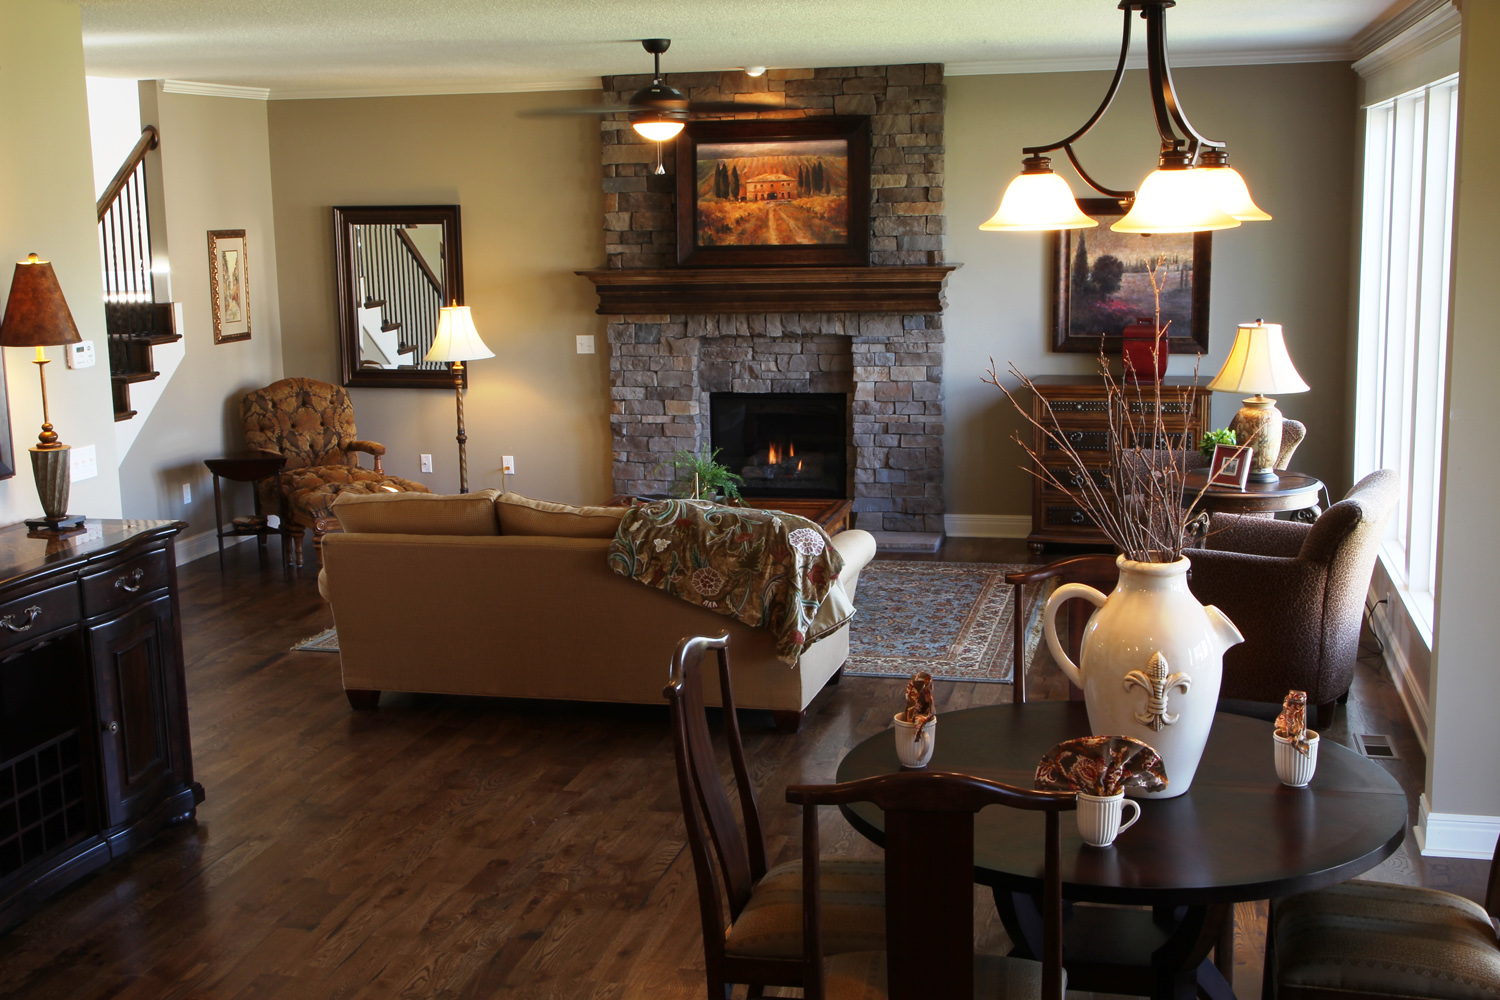 Monte Carlo great room with stone fireplace